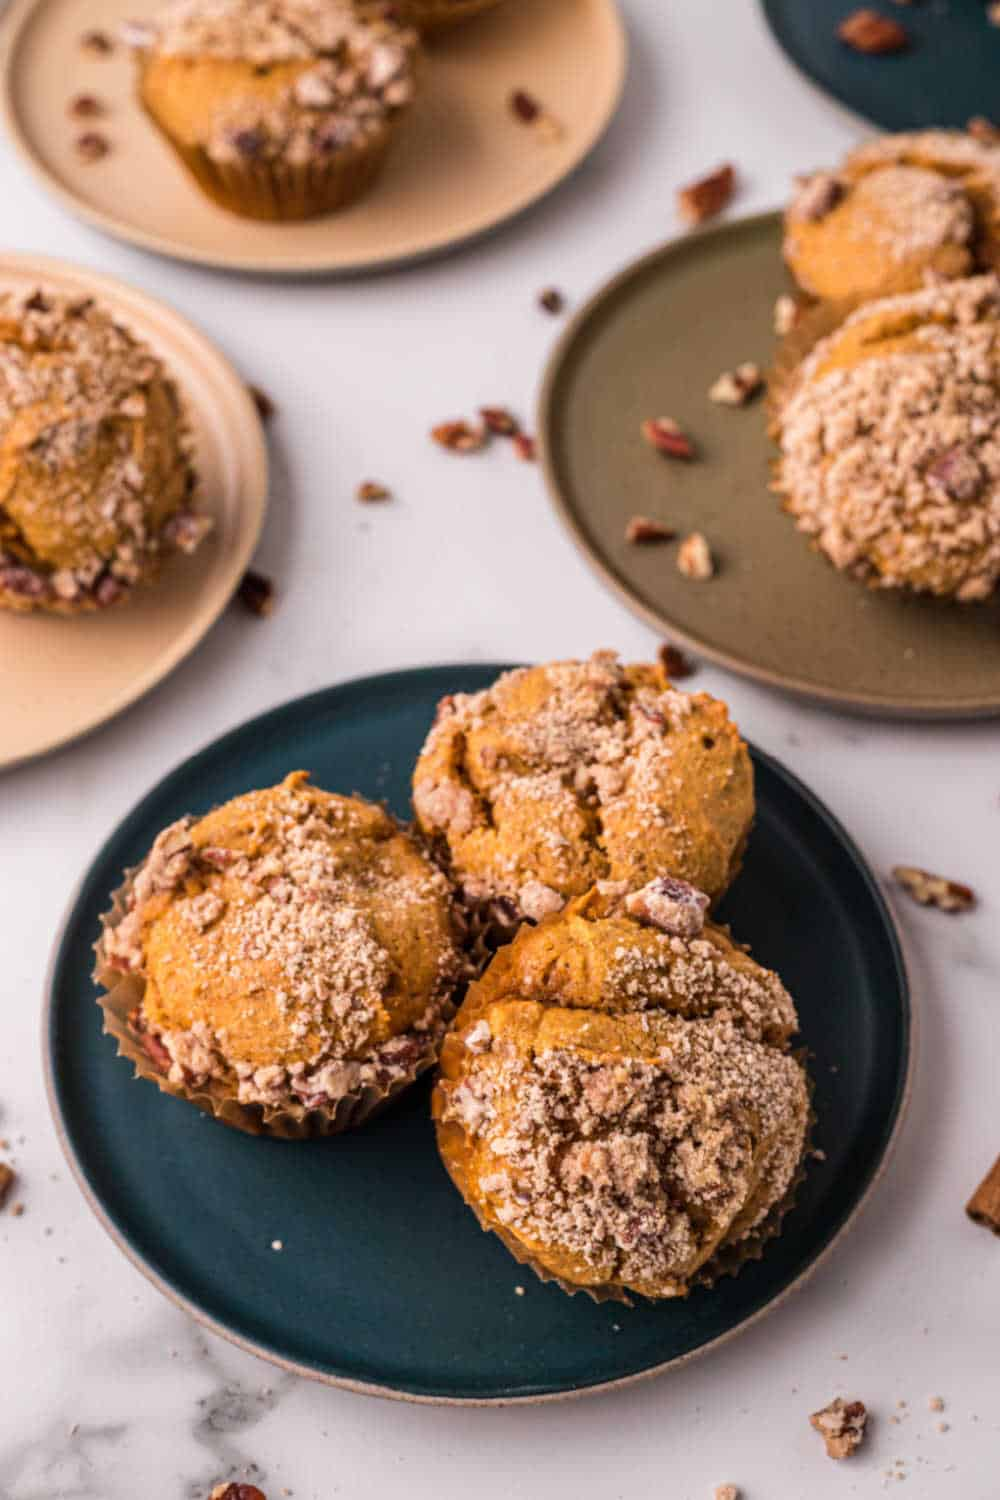 Pumpkin crumb muffins on colored plates